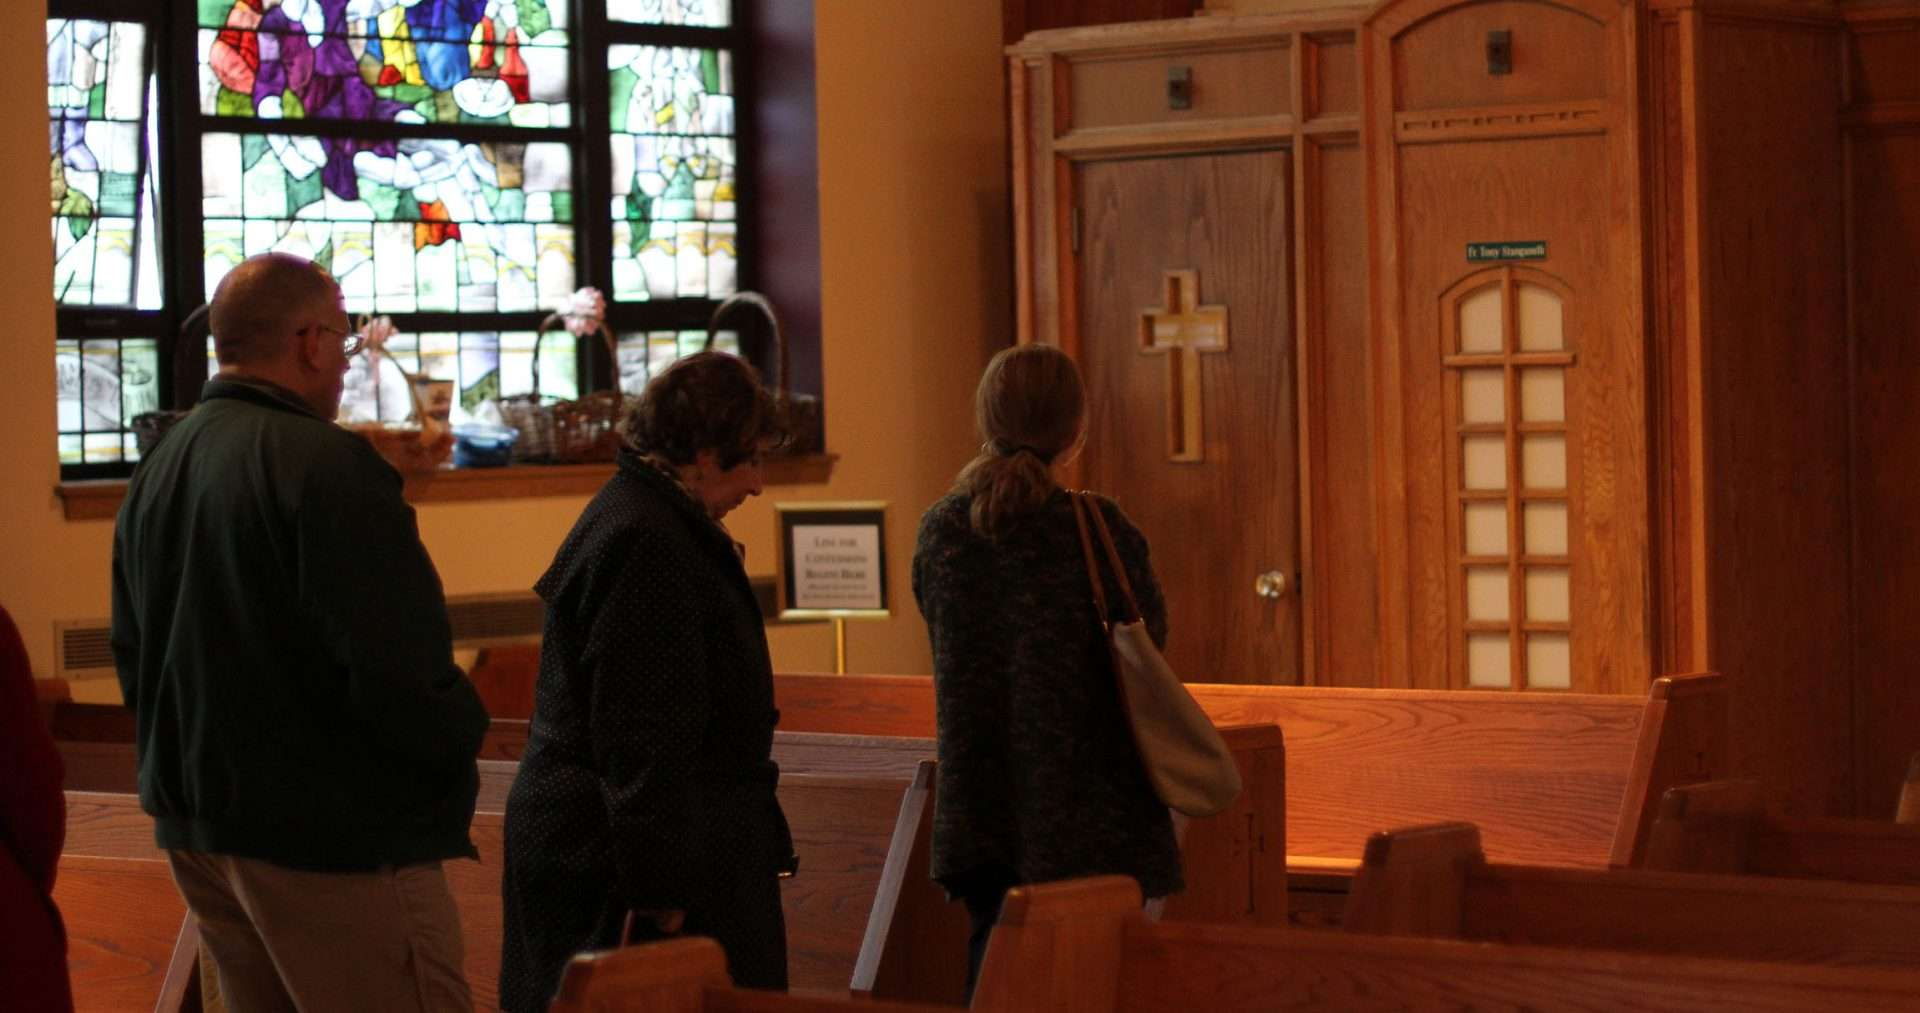 4 lies most Catholics believe about confession and repentance